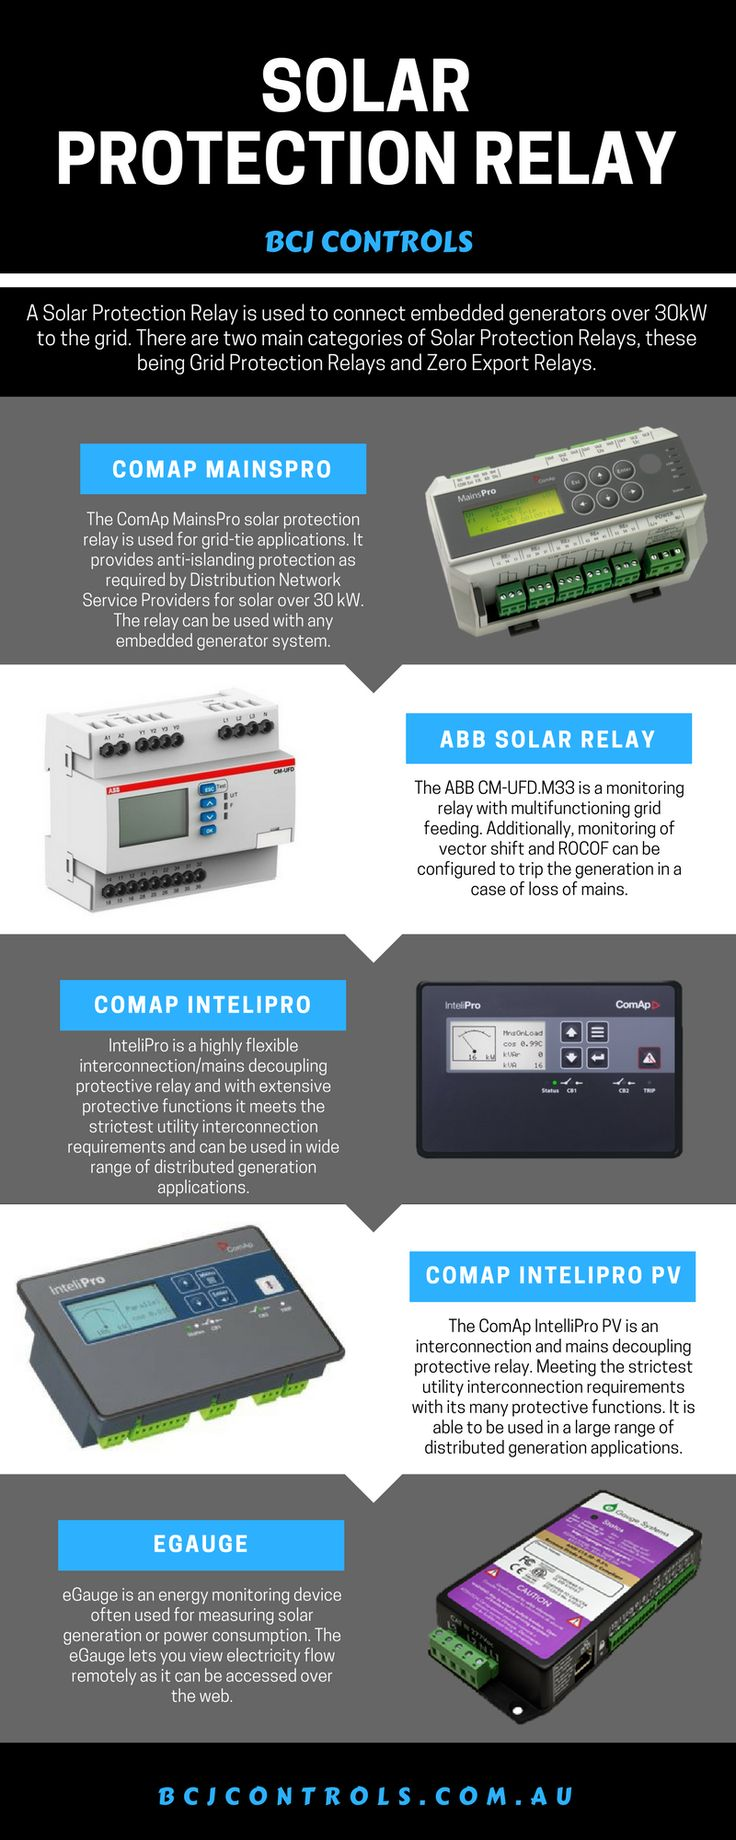 There are many types of Solar Protection Relays in the market, but we choose the best quality to ensure the safety of our customers. Also we offers testing, commissioning and installation, just call (02) 9534 8465 or visit us here http://bcjcontrols.com.au.  #SolarProtectionRelay #ComapMainsPro #MainsPro #eGauge #eGaugeAustralia #BlueLog #BlueLogDataLogger #ComApIntelliPro #ComApInteliPro